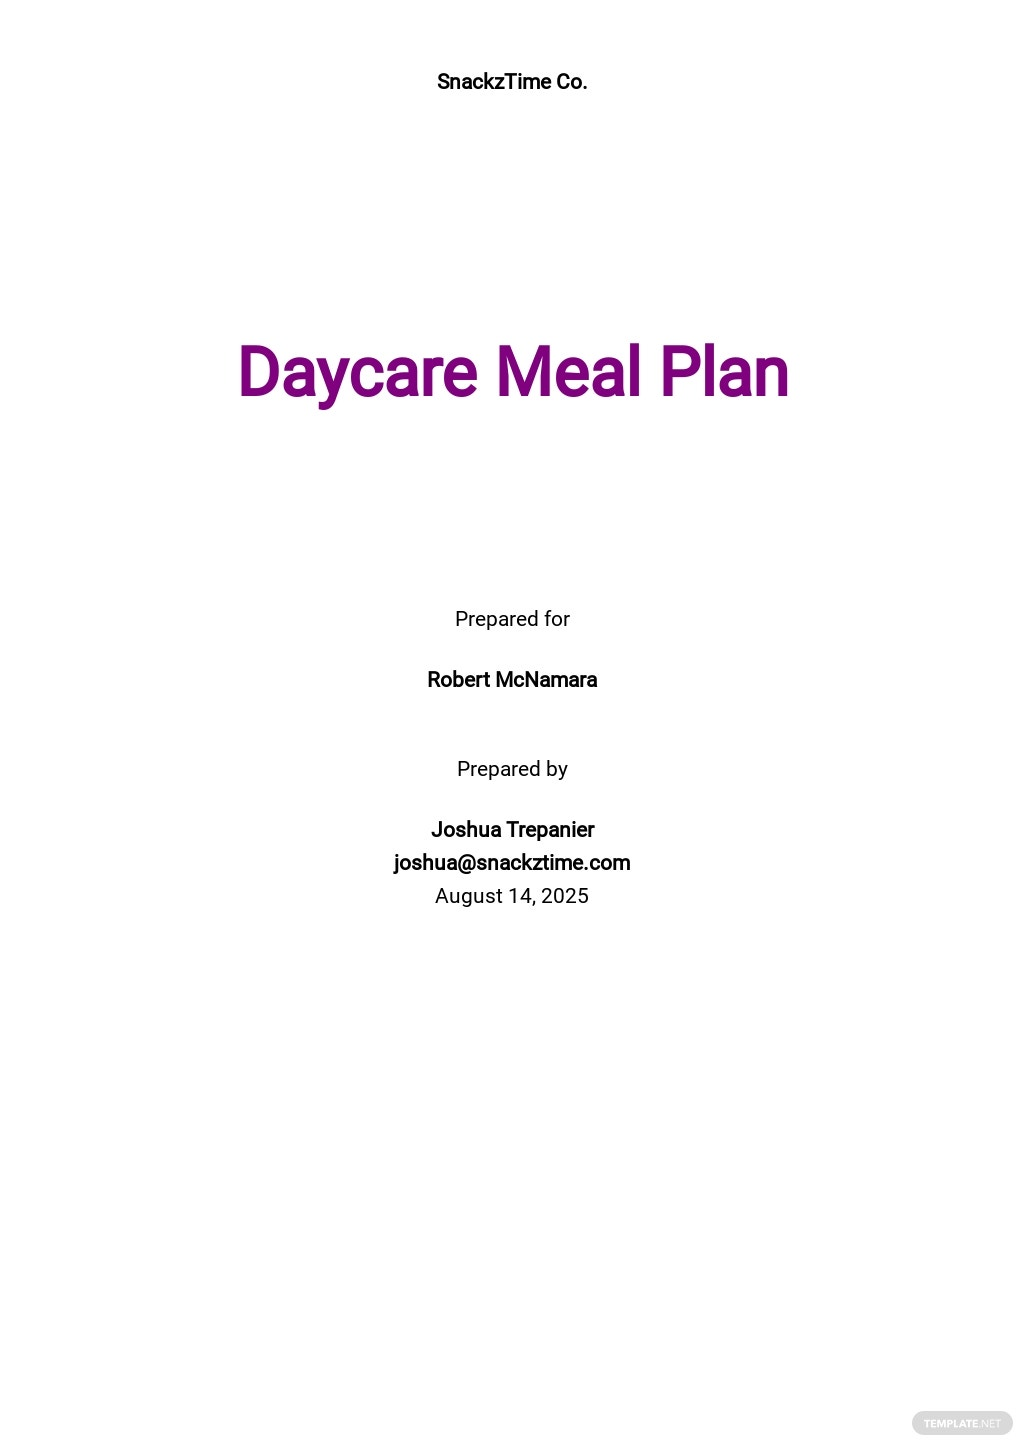 Daycare Meal Plan Template